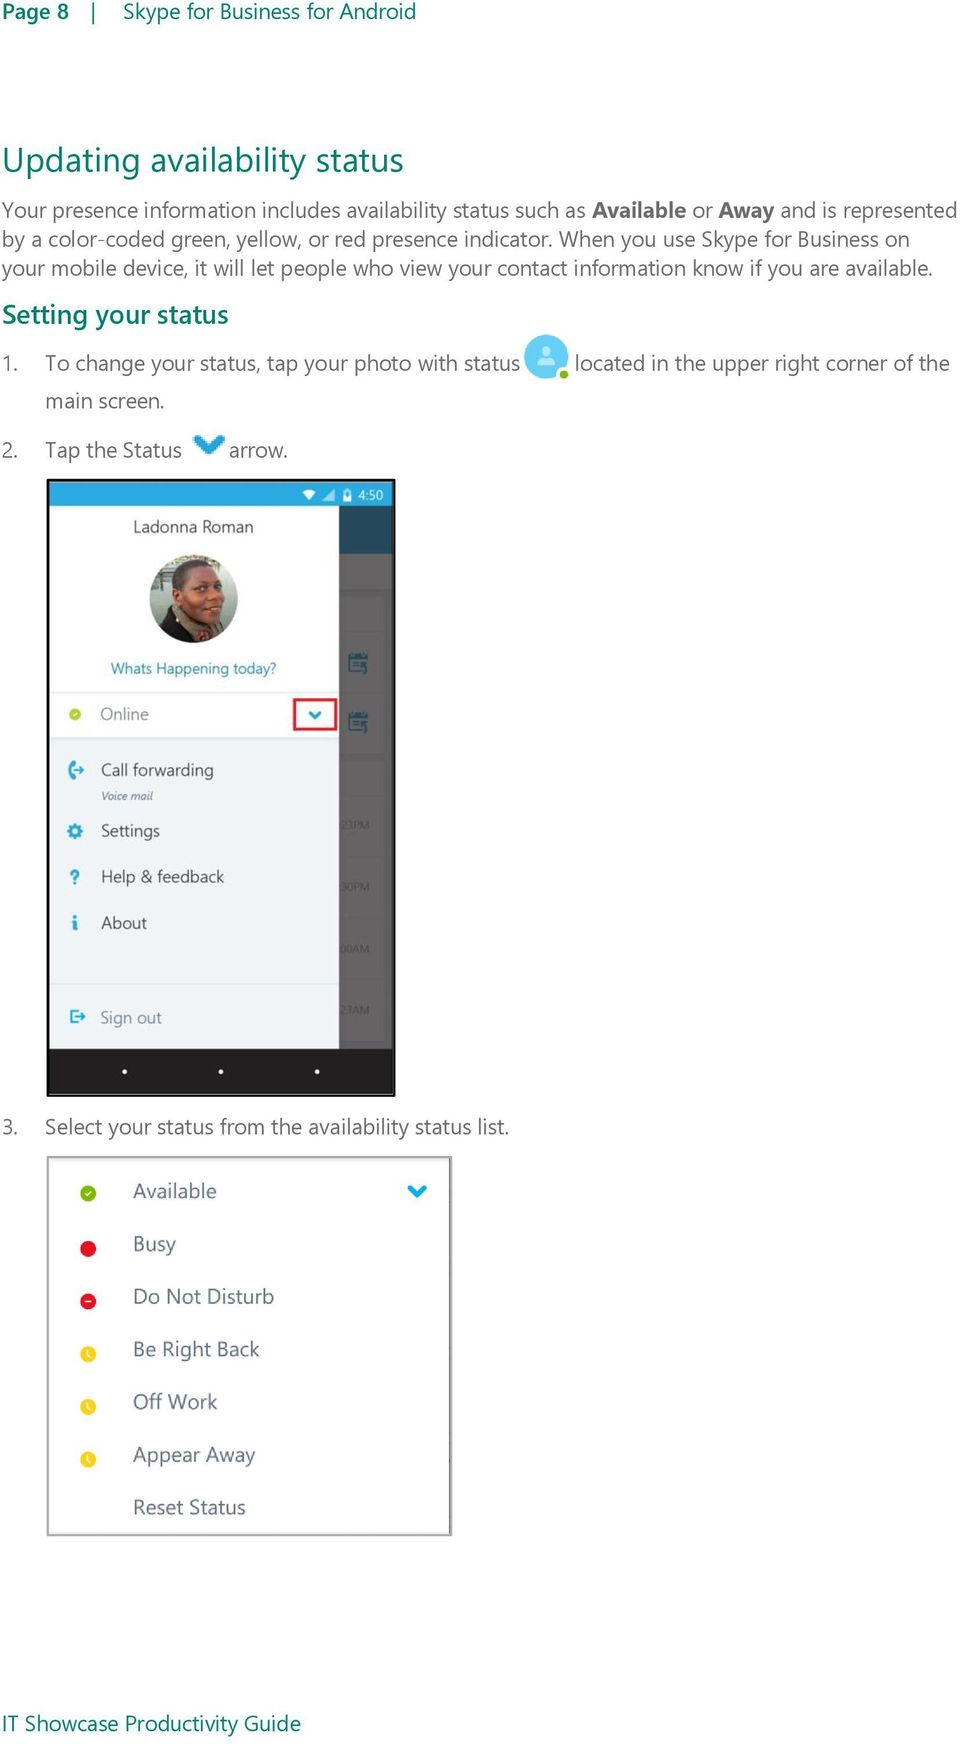 When you use Skype for Business on your mobile device, it will let people who view your contact information know if you are available.